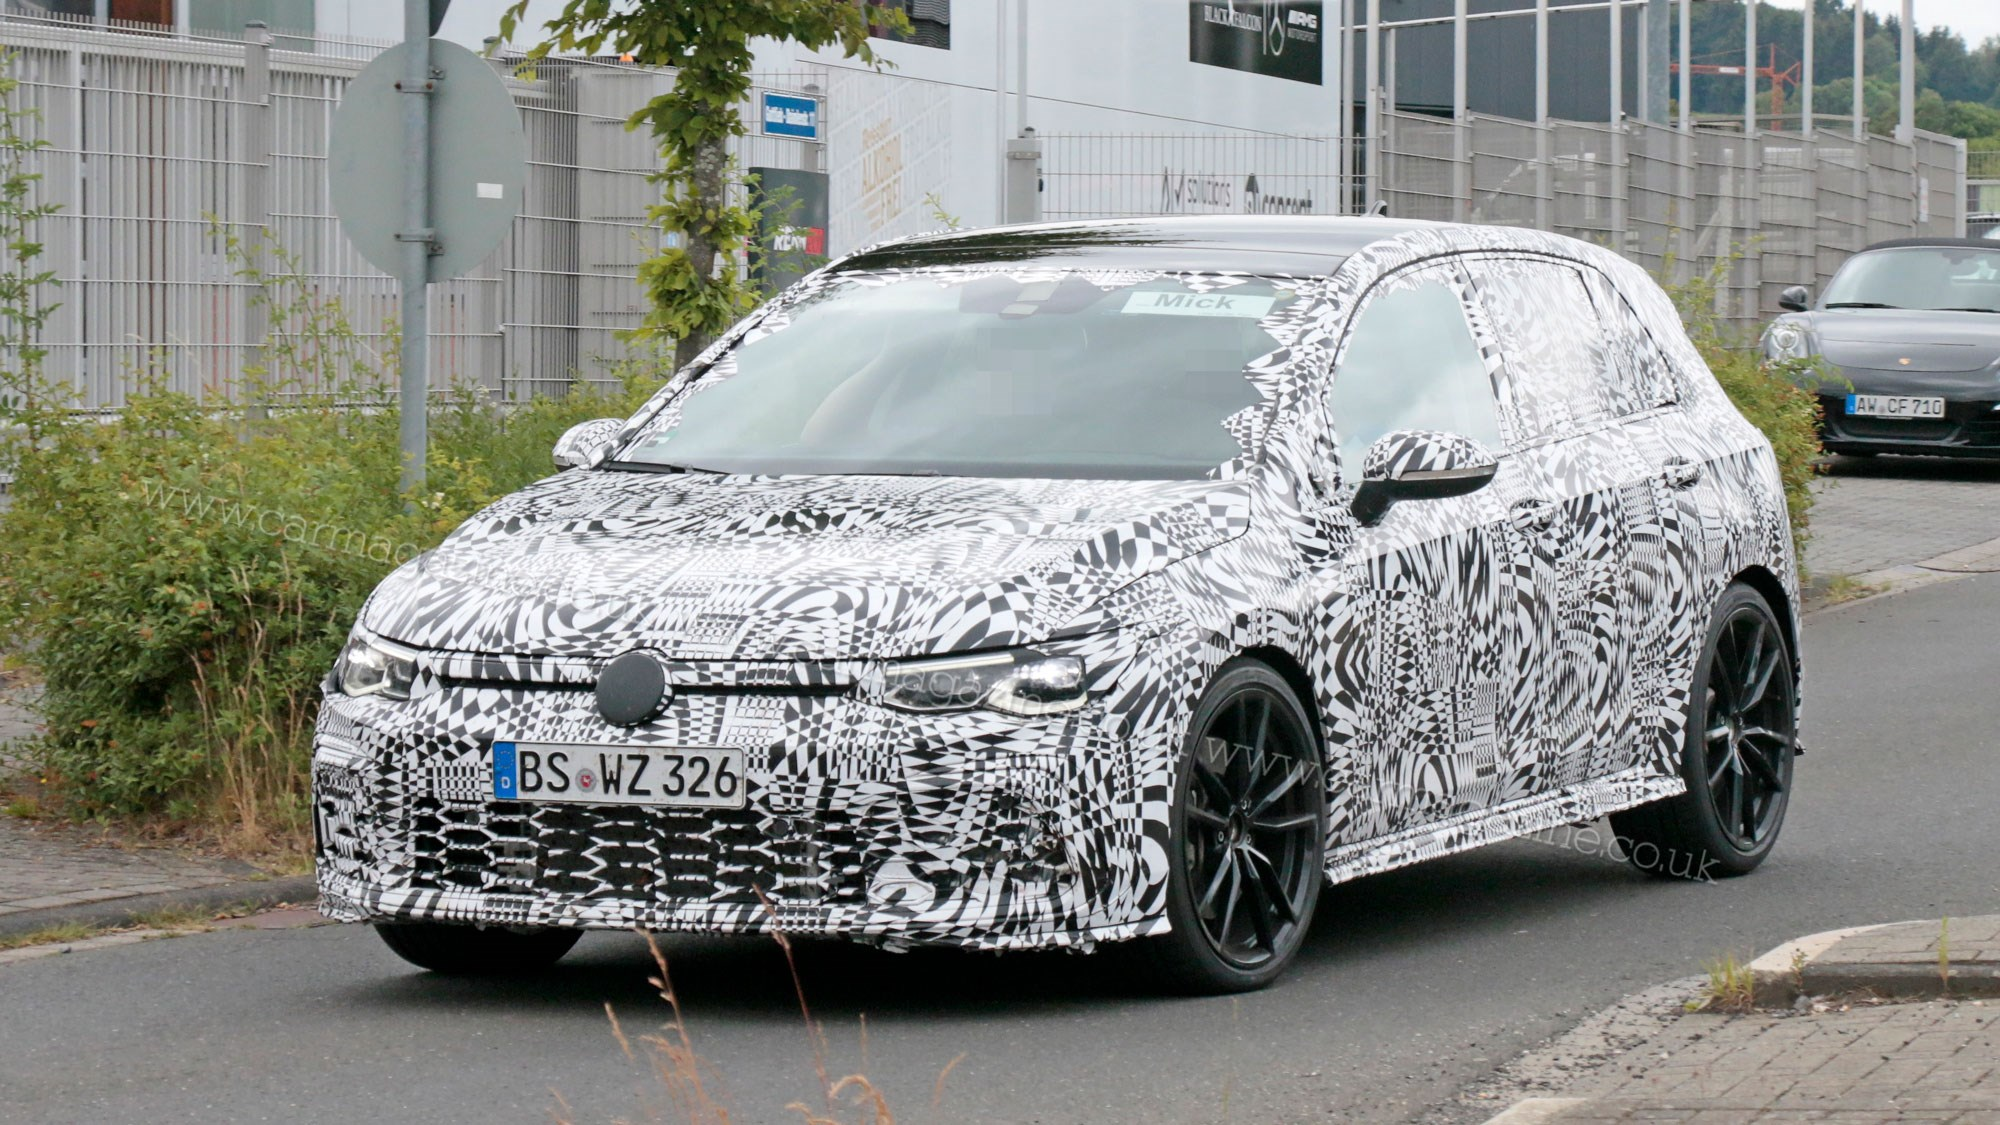 New Vw Golf Mk8 Fresh Pictures Of Gti Testing Car Magazine